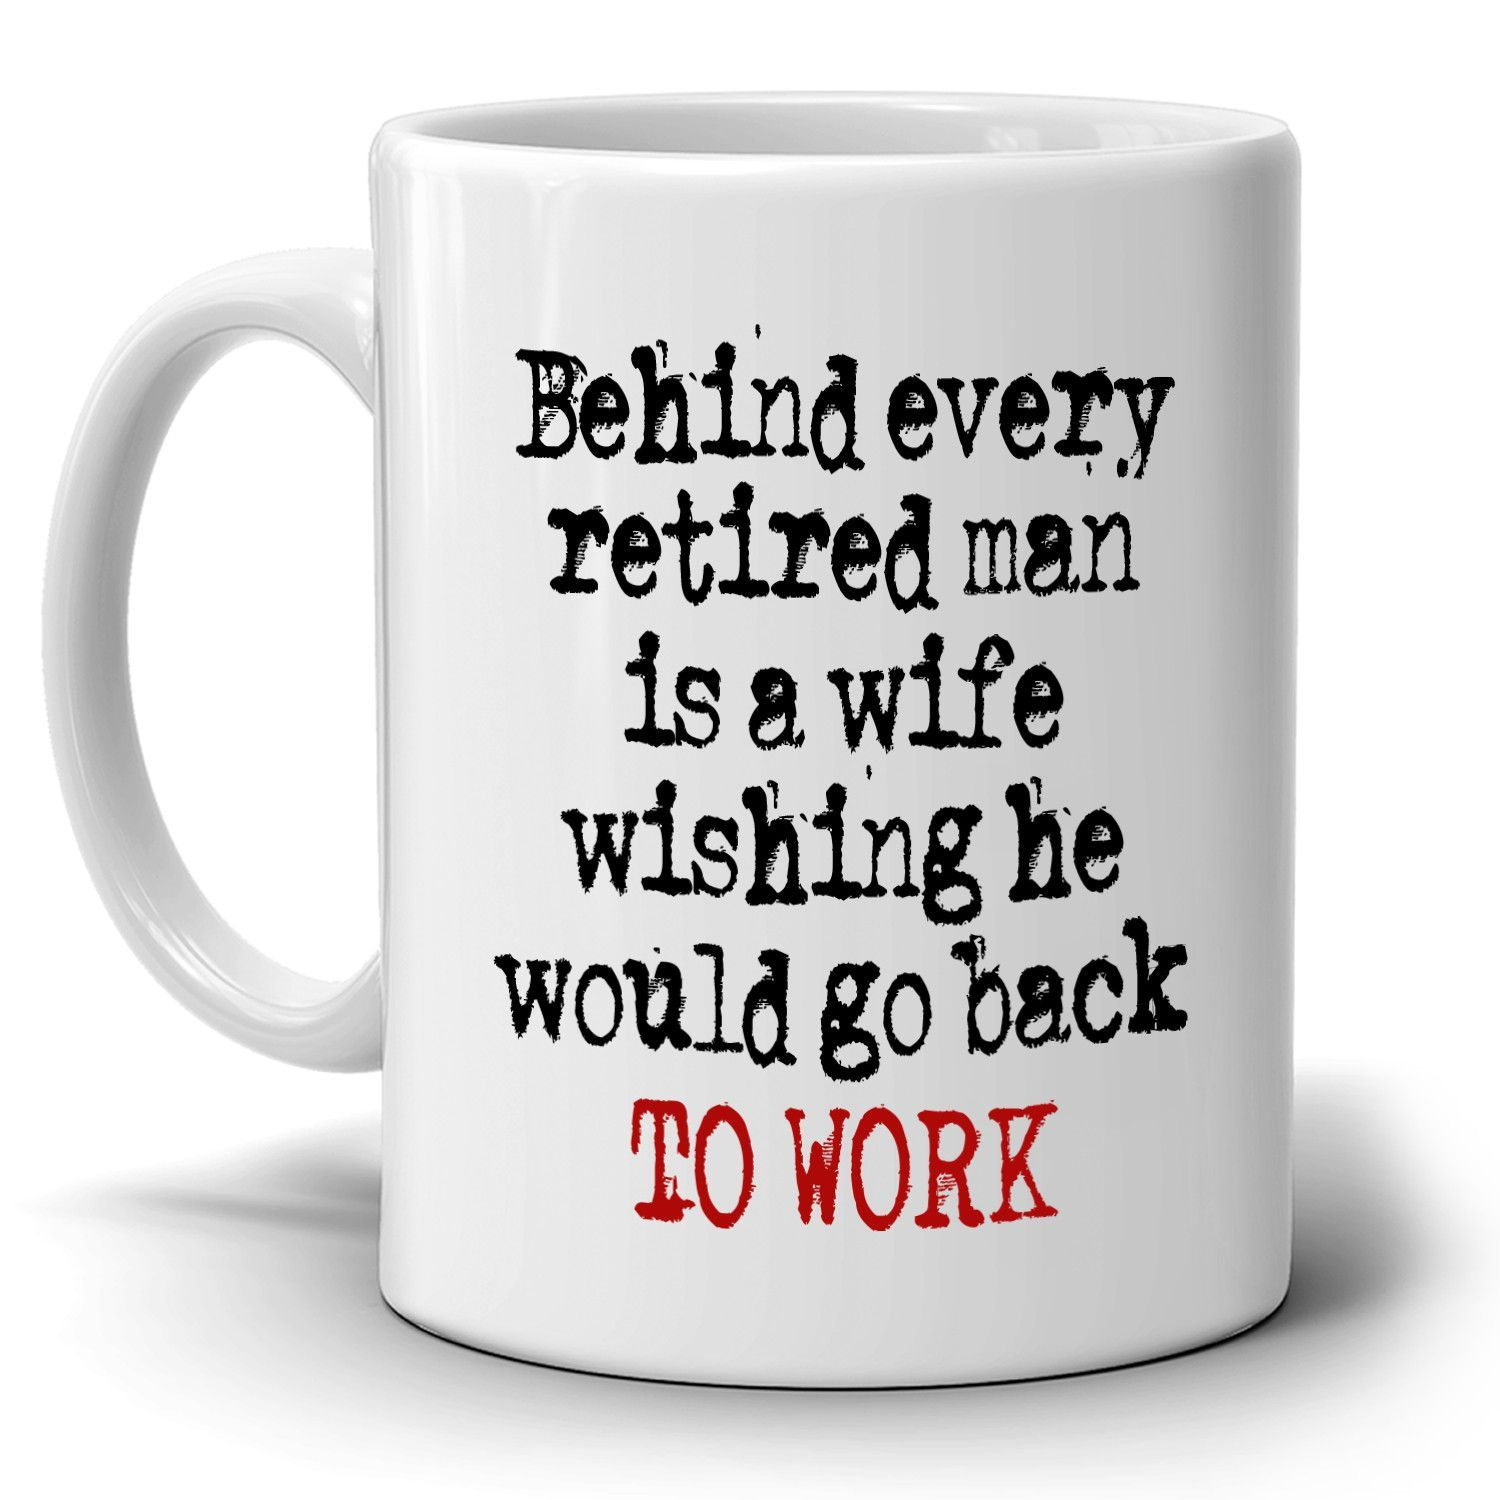 Funny Retired Husband And Wife Retirement Gifts Couples Retiree Mug Printed On Both Sides Retirement Humor Husband Humor Funny Retirement Gifts